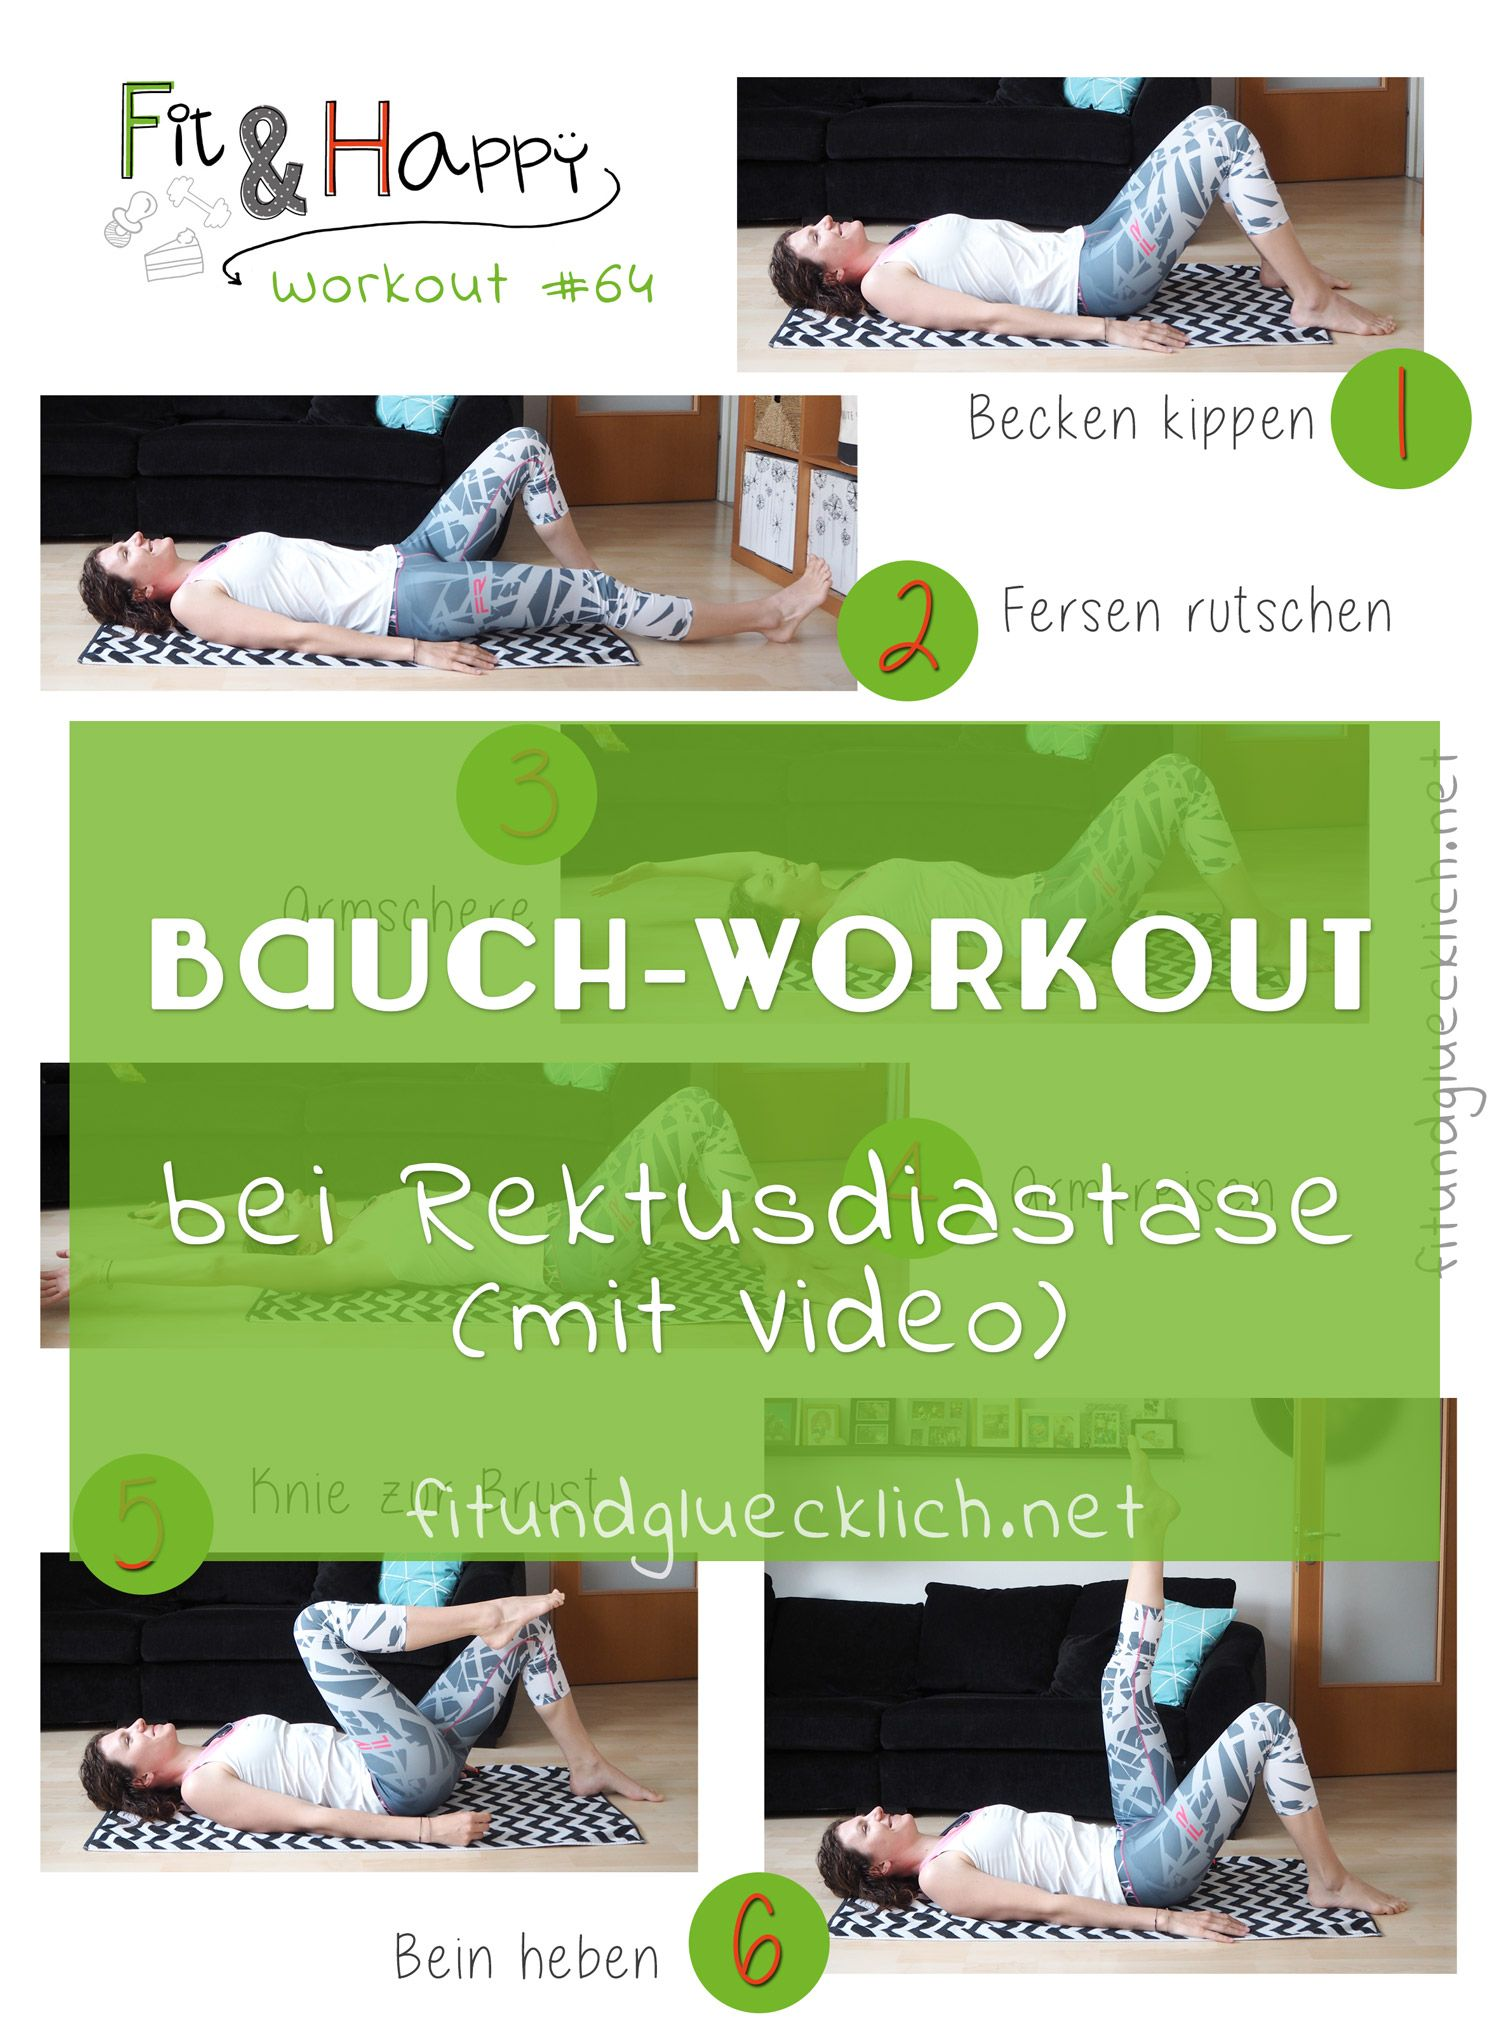 Workout #64 - Bauchtraining bei Rektusdiastase #corepilates